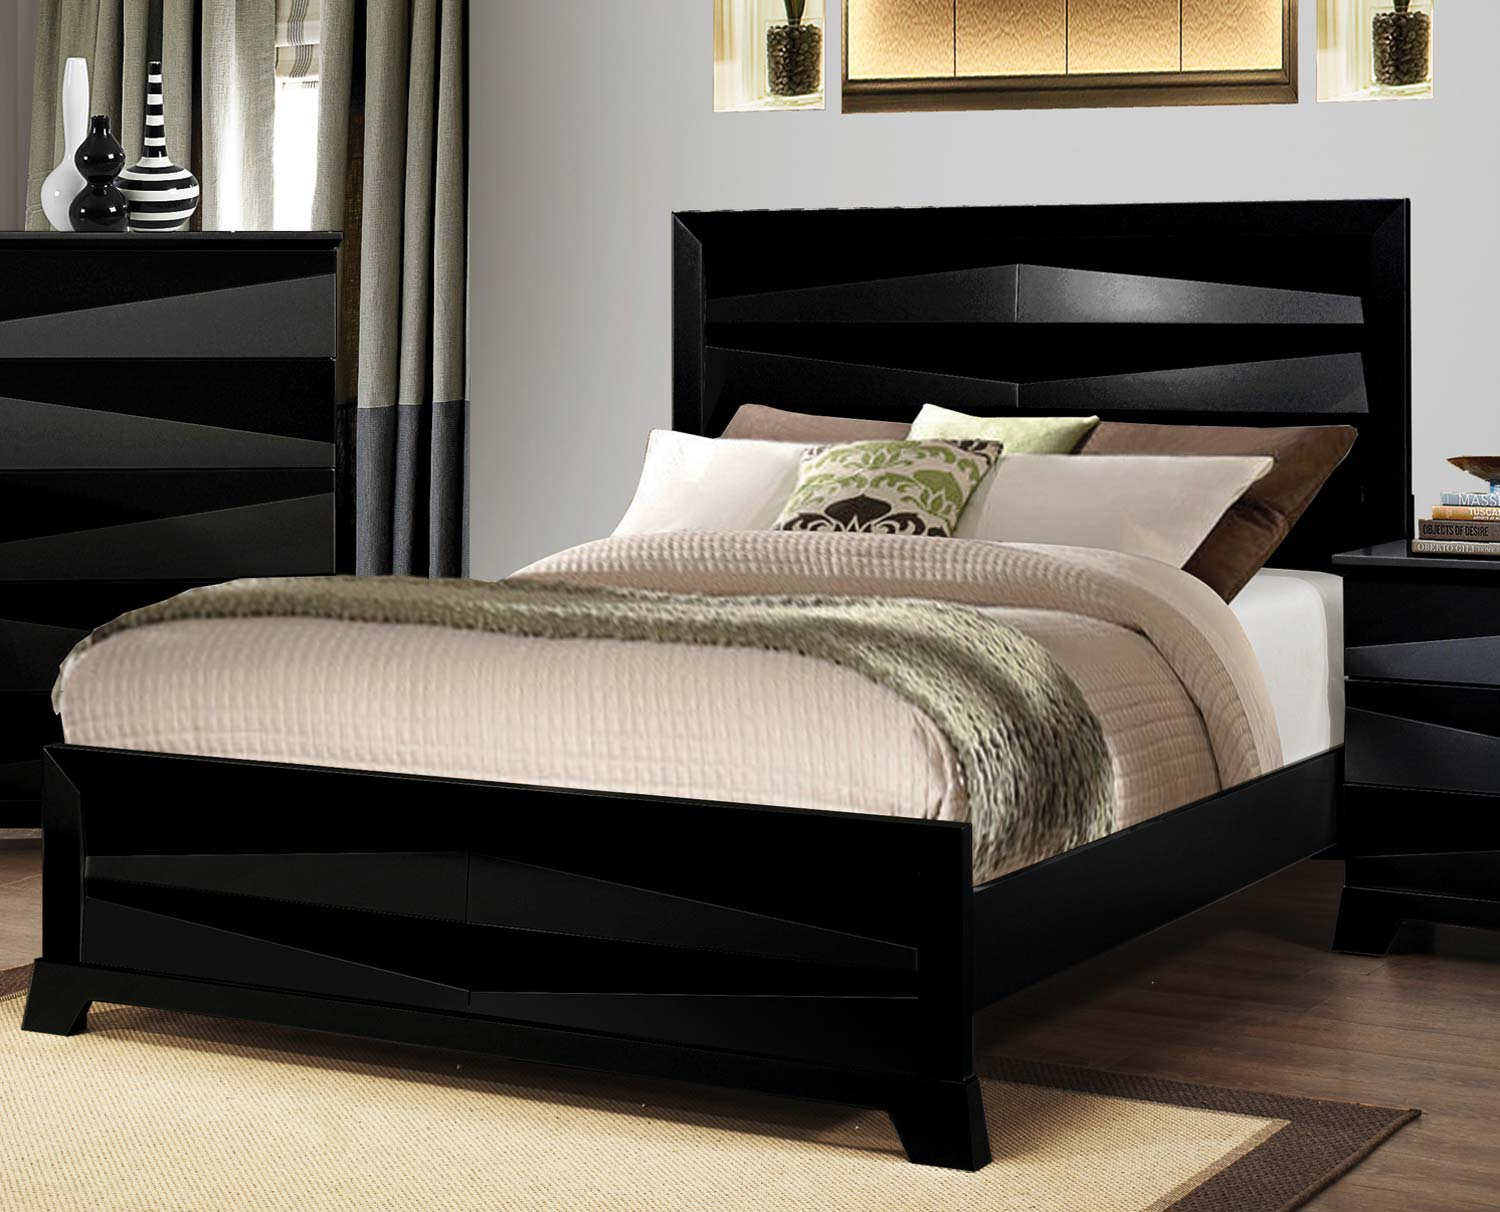 Coaster Karolina Bed - Black